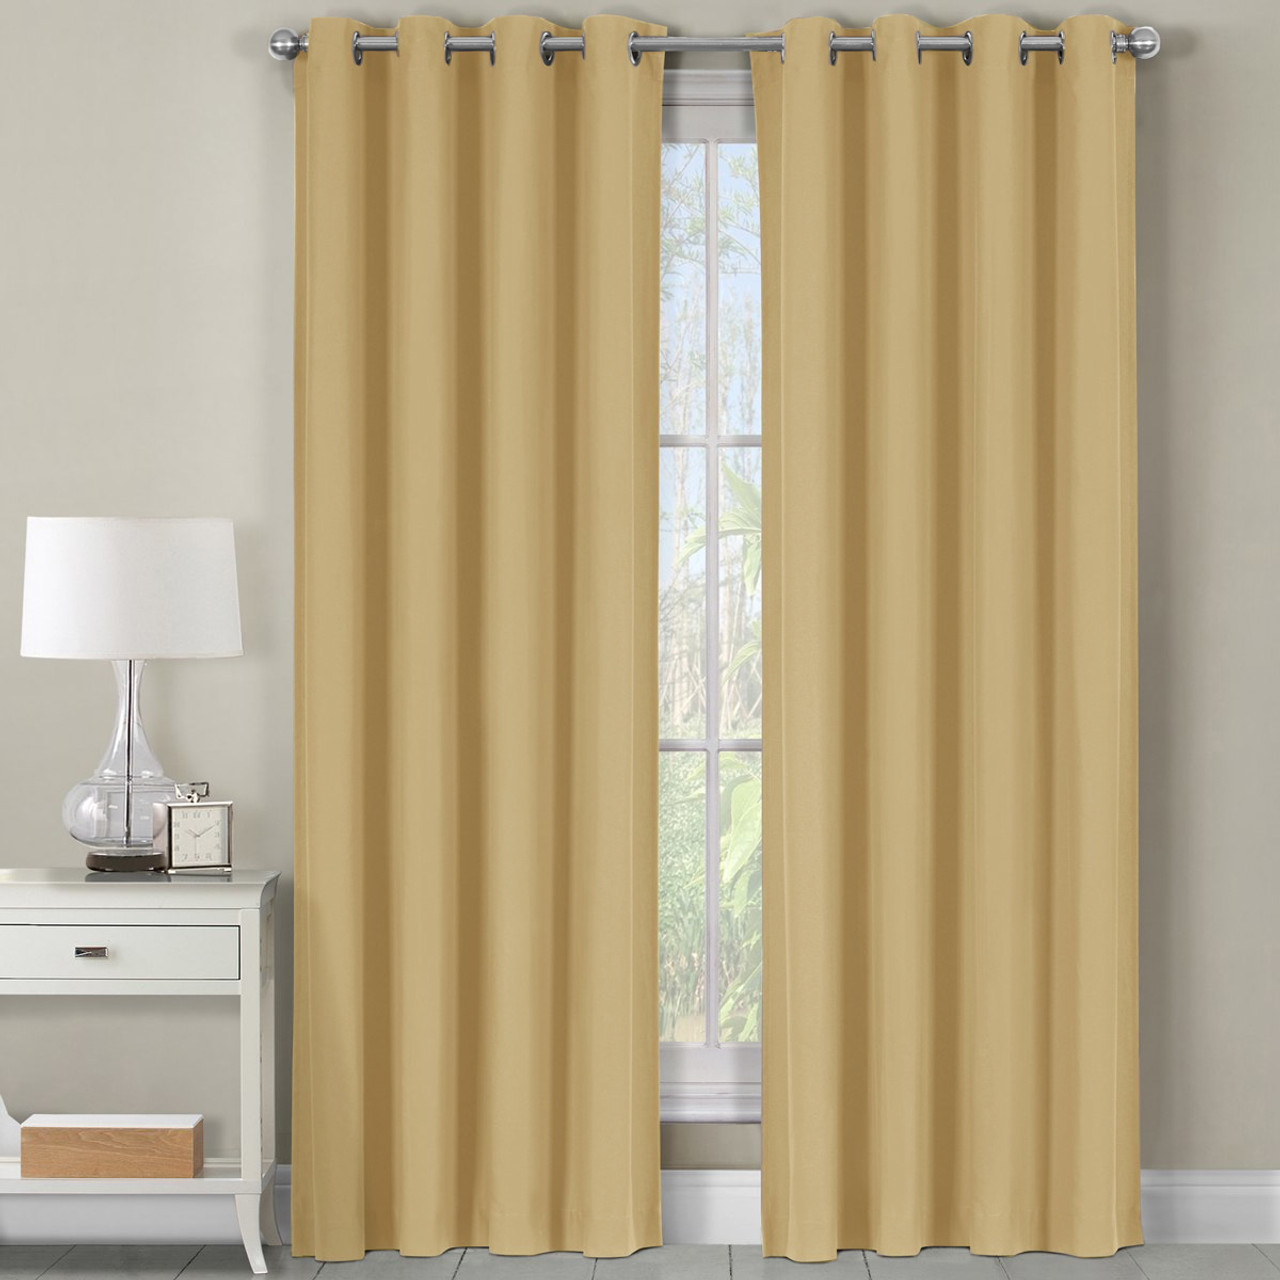 Cotton Curtain Panels Beige Luxor Heavyweight 100 Cotton Room Darkening 54